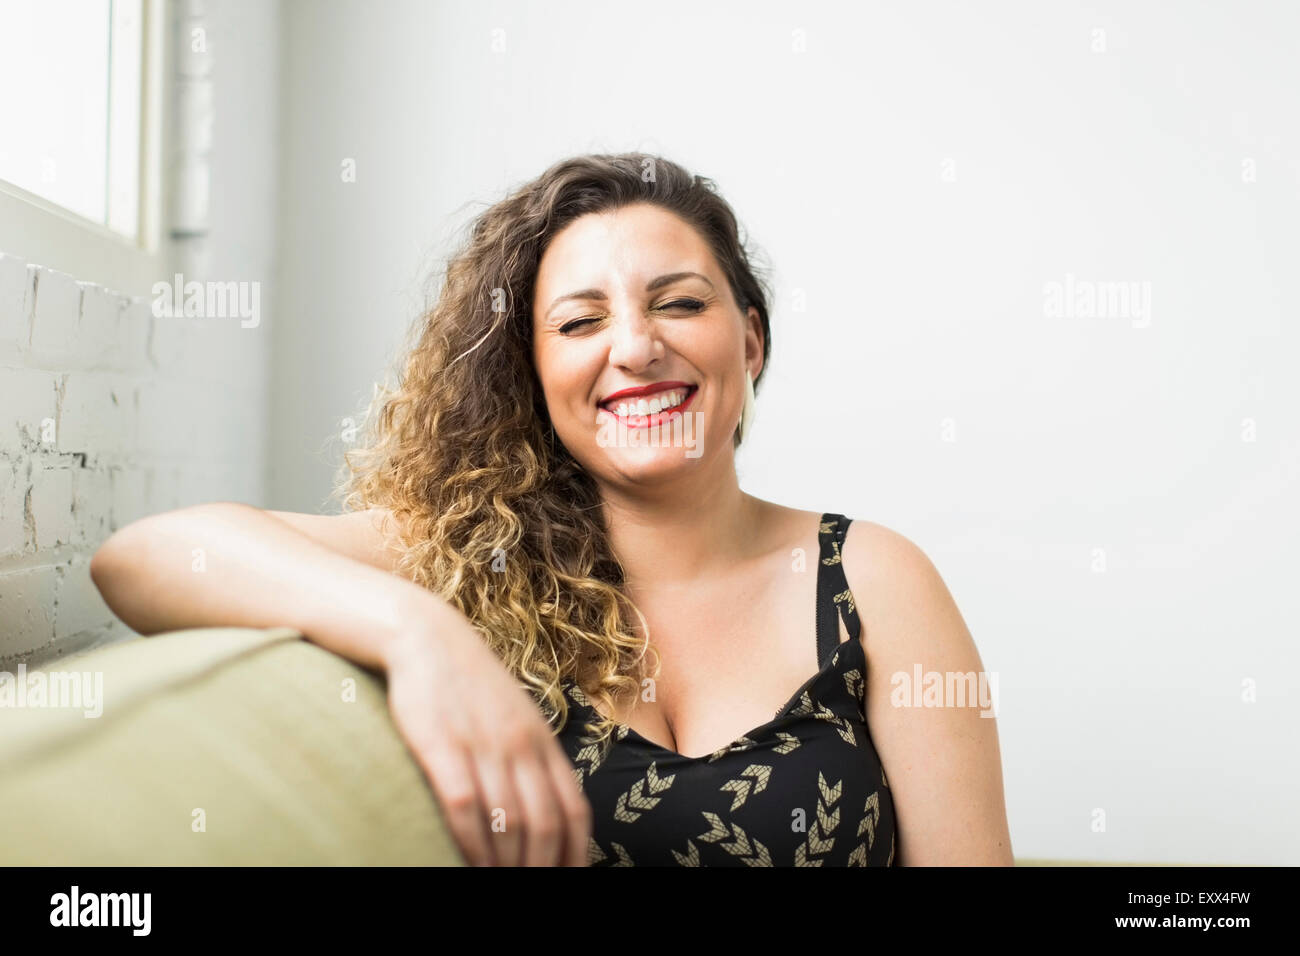 Woman Laughing with closed eyes Photo Stock